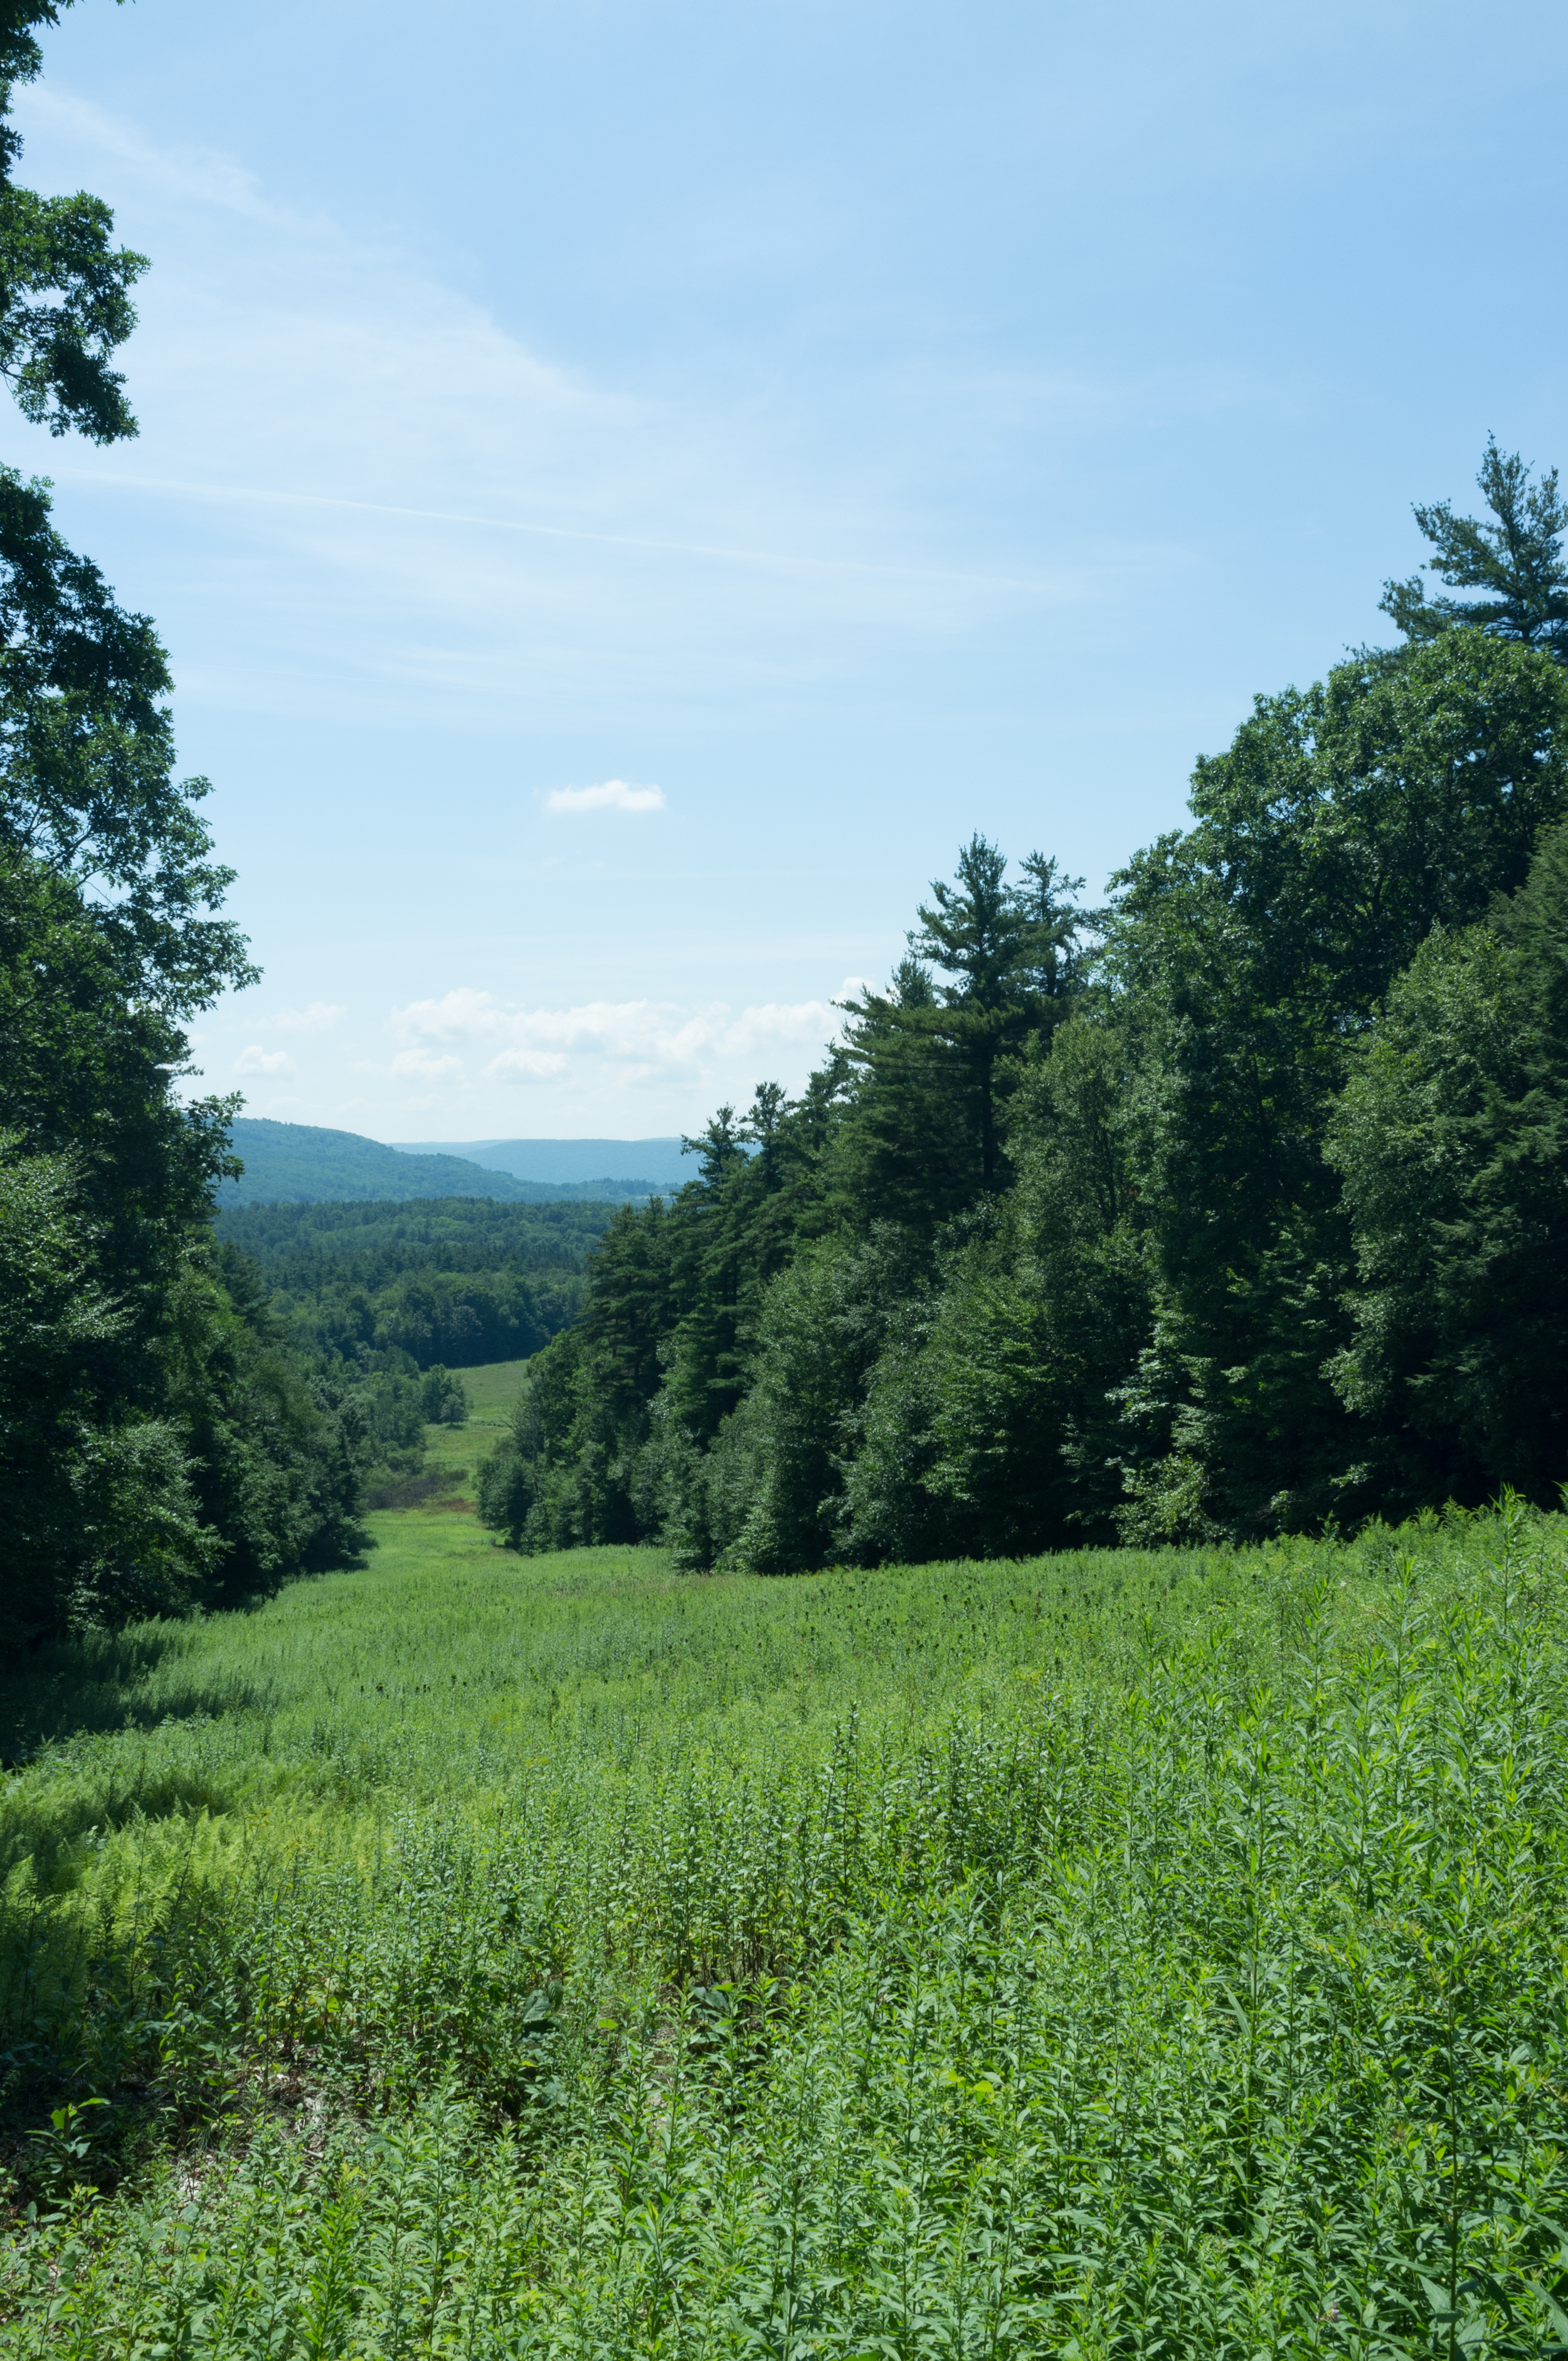 One of the many breathtaking views on the trails at Olivia's Overlook.